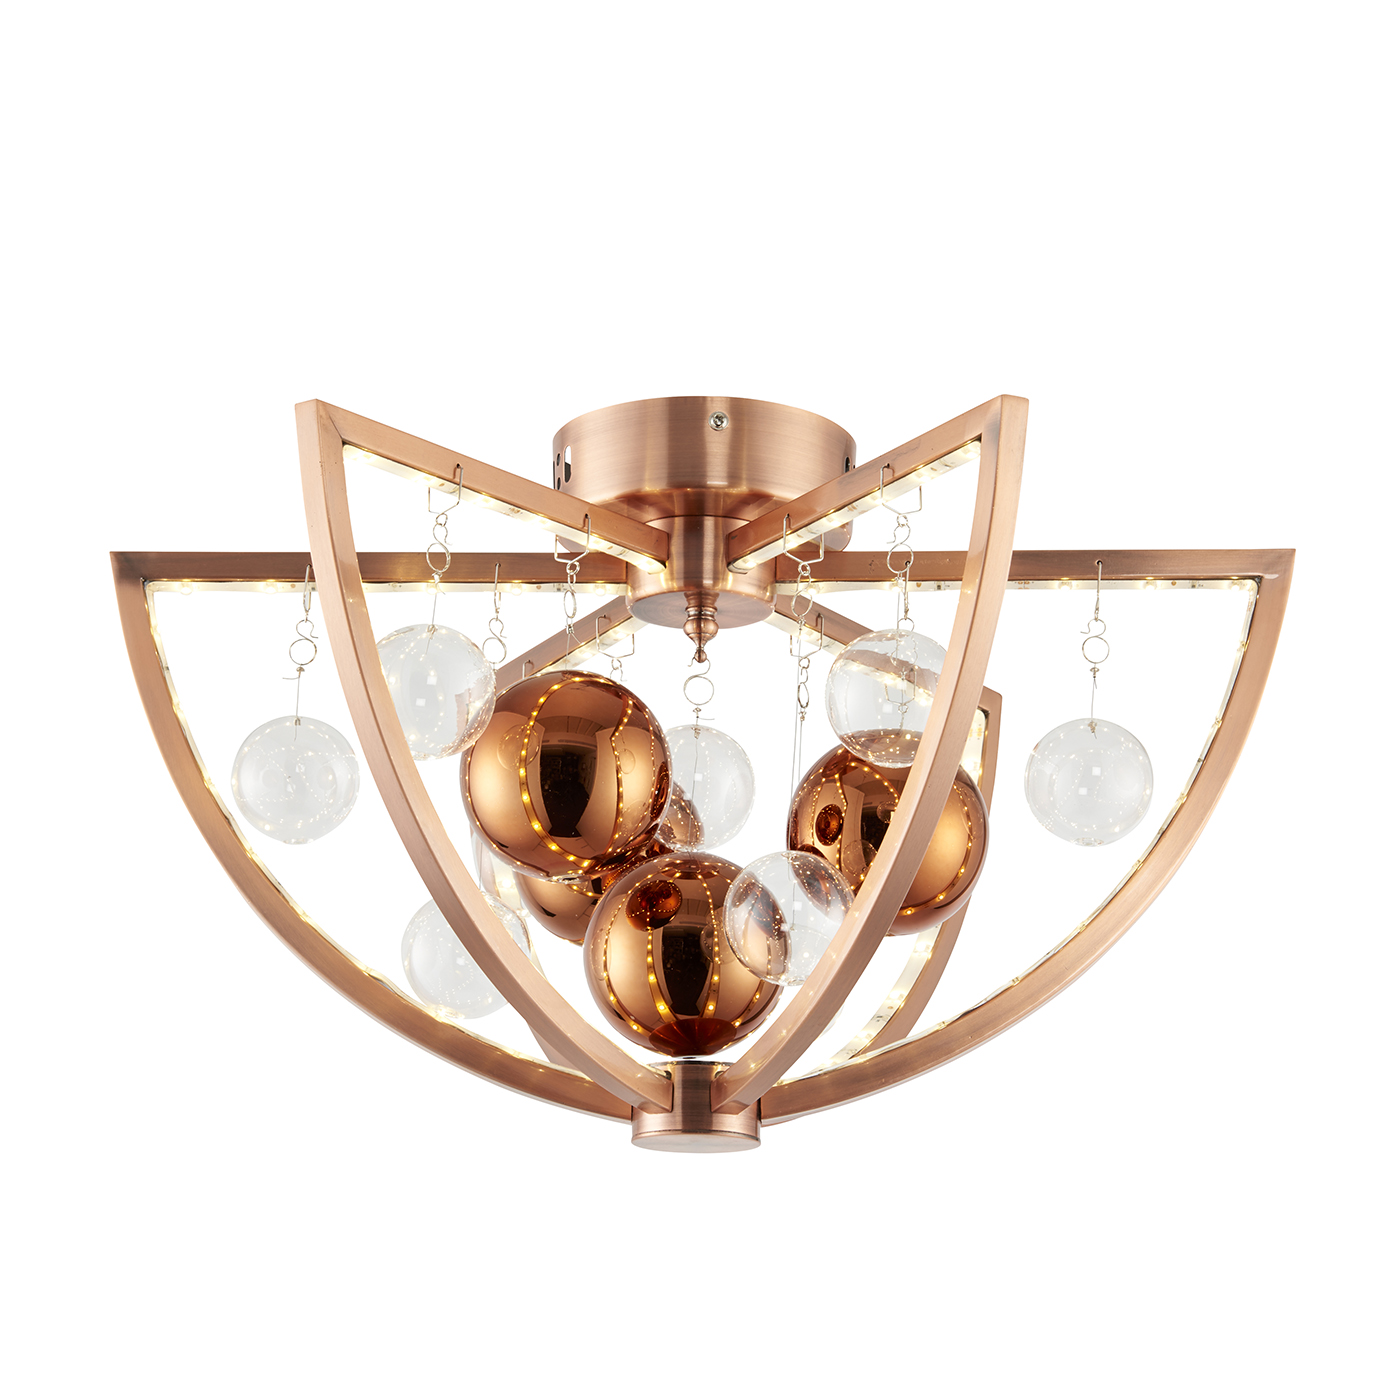 Endon Muni flush ceiling light 7.5W Copper plate with clear & copper balls Thumbnail 1